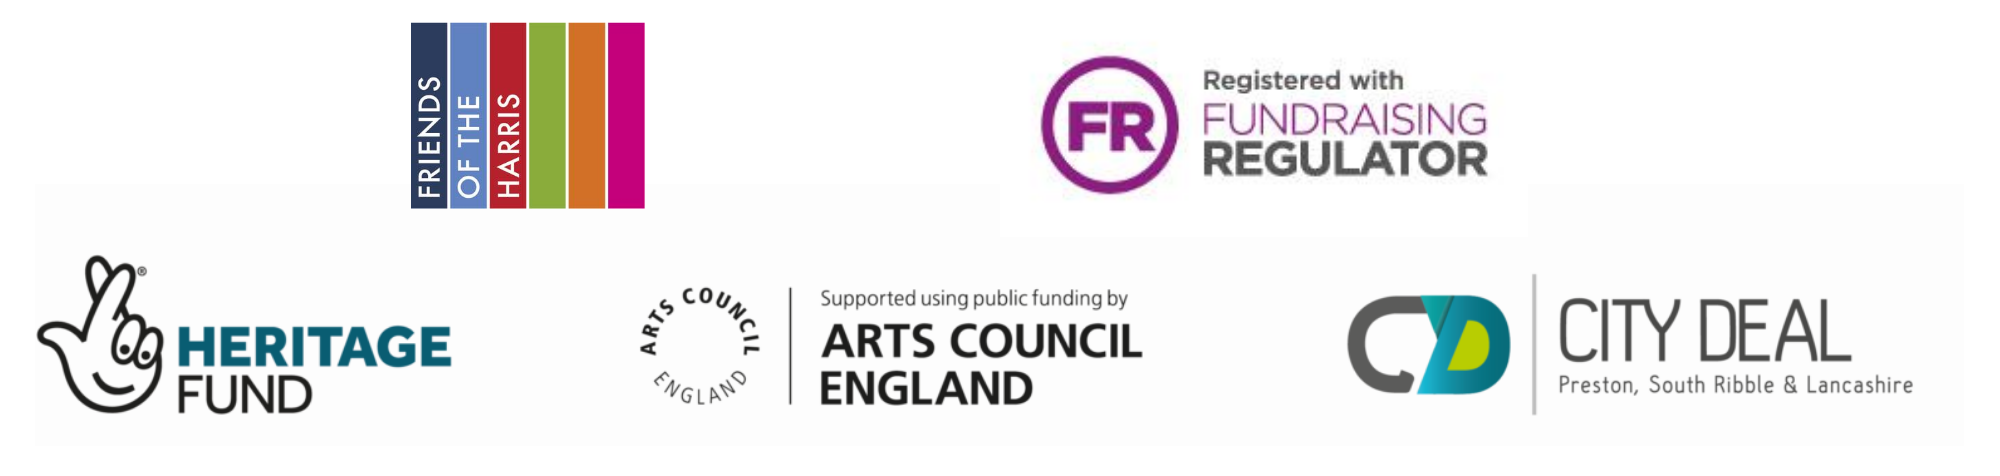 Friends of the Harris Logo, Fundraising Regulator Logo, Heritage Fund Logo, Arts Council England Logo, City Deal Logo